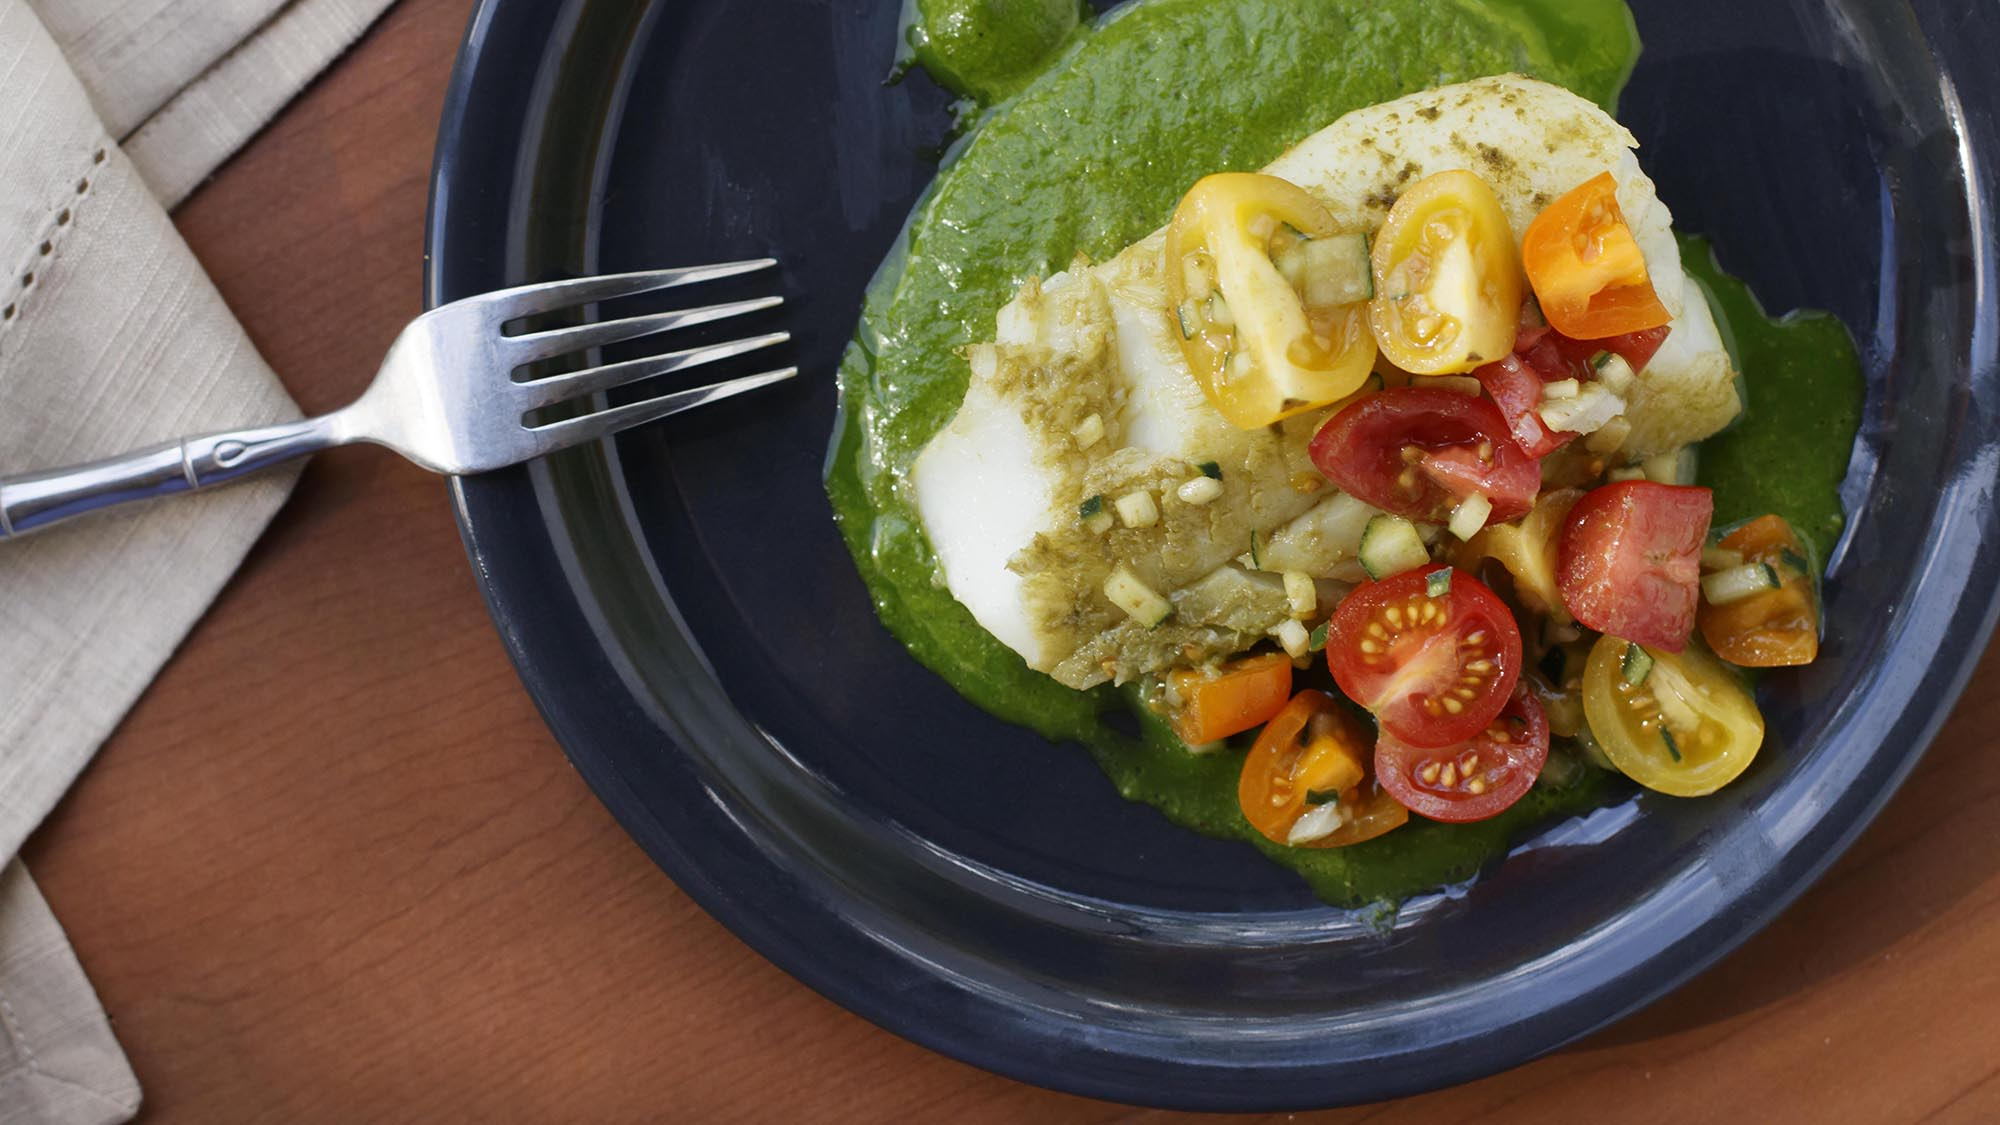 McCormick Matcha Baked Cod with Spinach Pesto and Tomato Salad Recipe